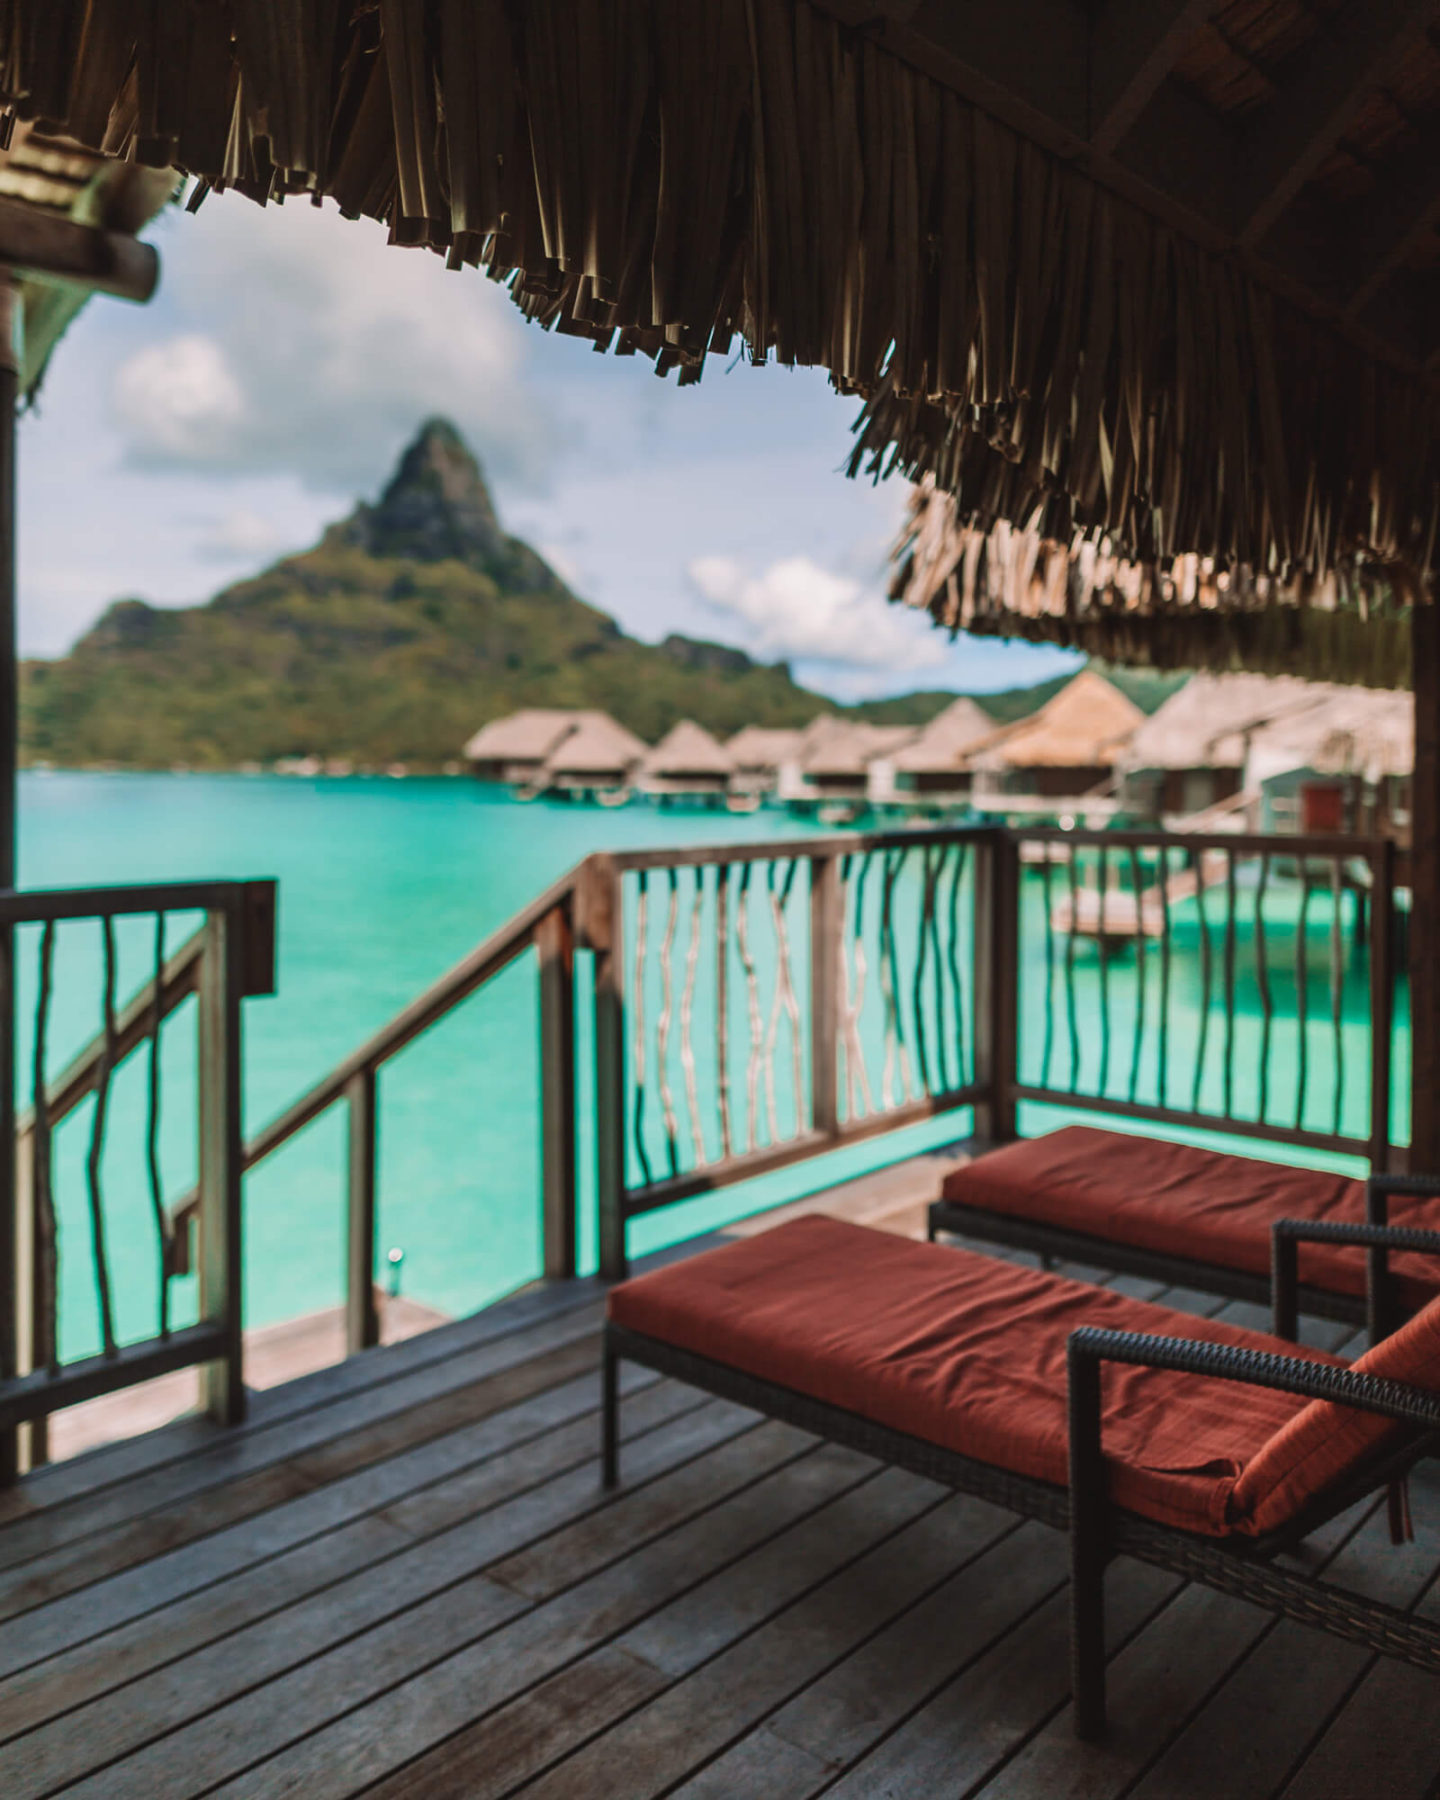 view of mount otemanu in bora bora from inside an overwater bungalow at intercontinental thalasso resort